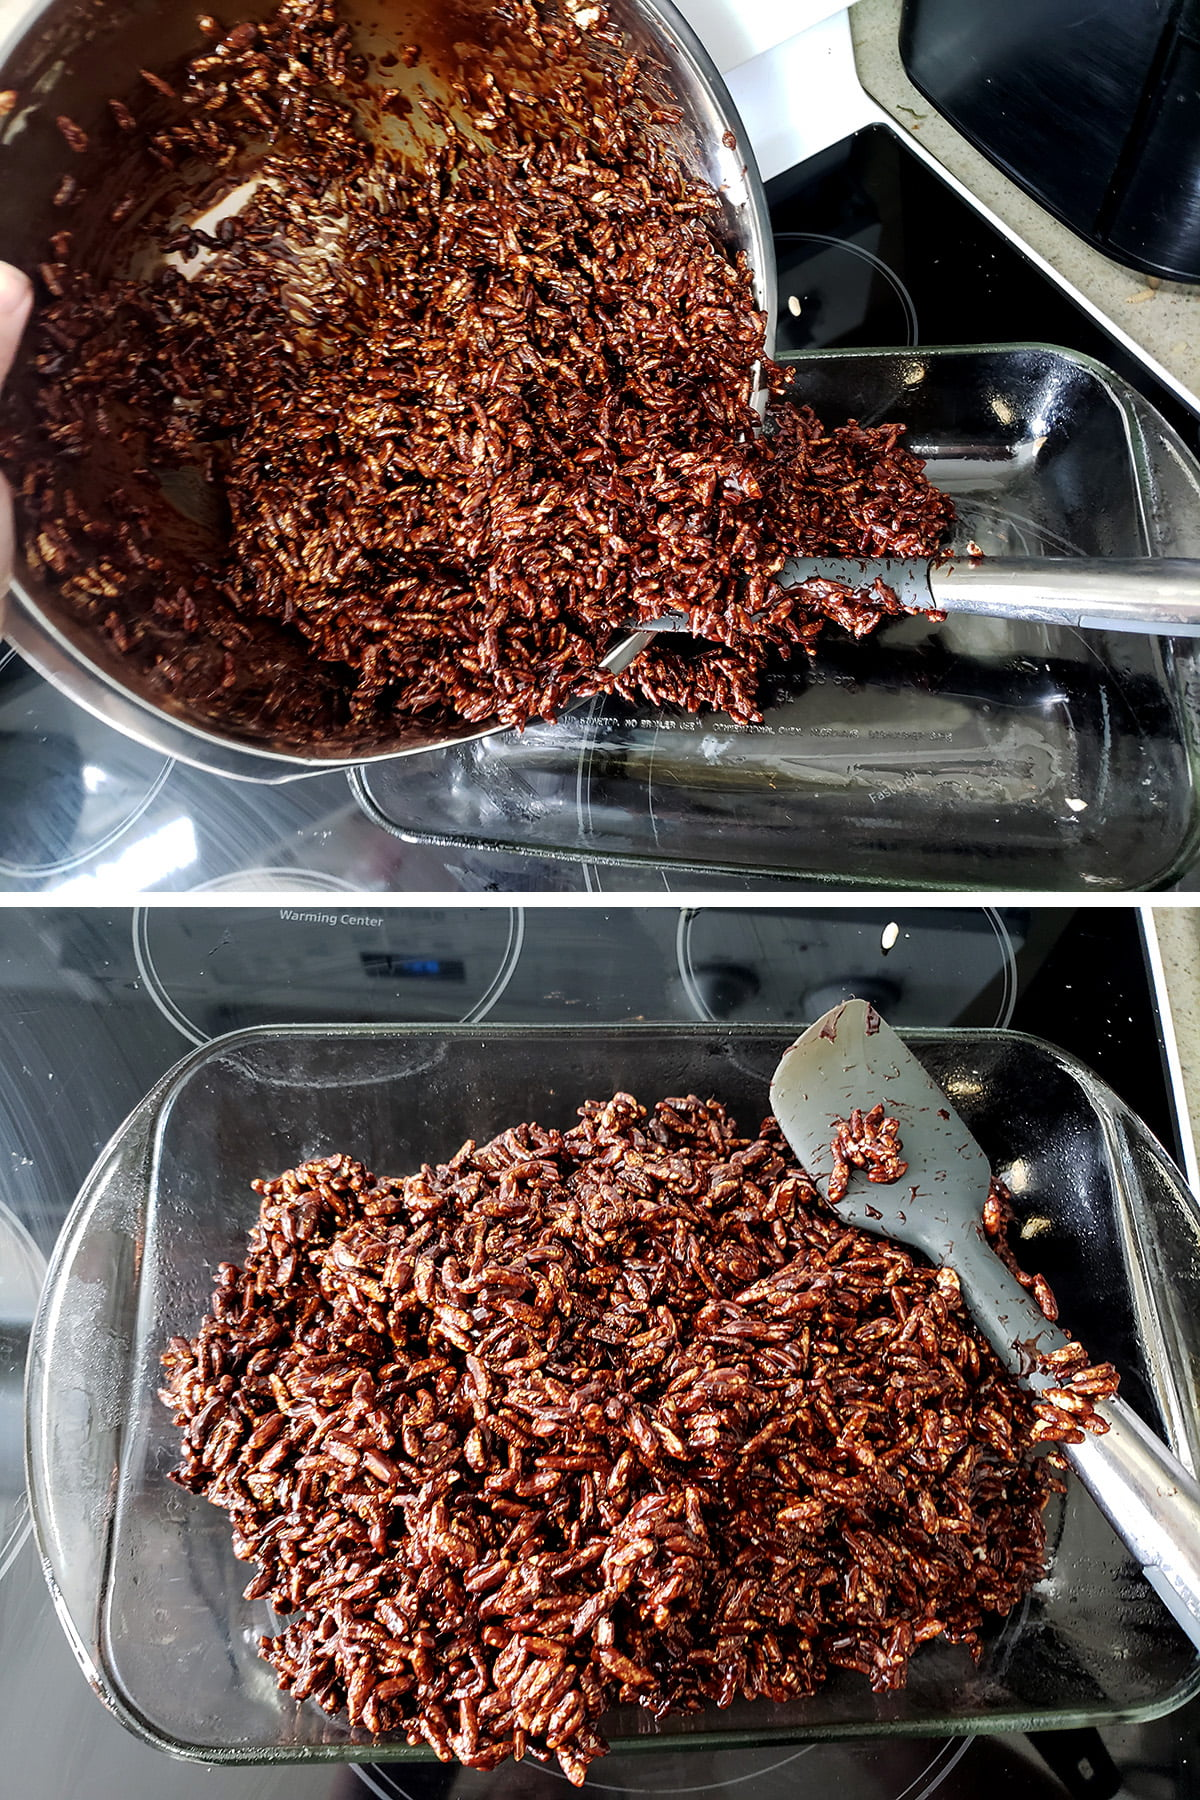 A two part image showing the puffed wheat mixture being dumped in the prepared pan, and being spread.